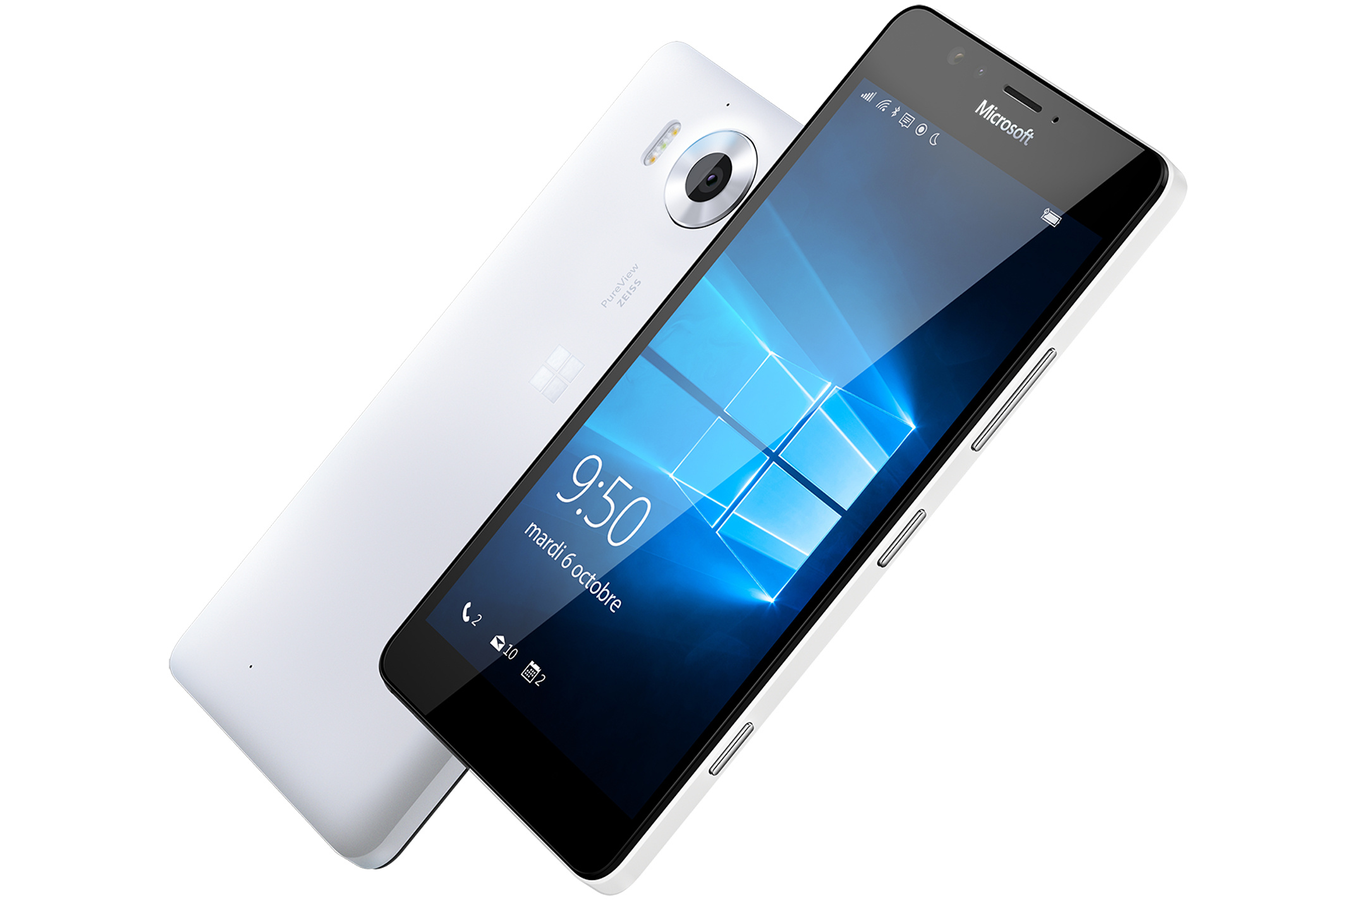 smartphone microsoft lumia 950 blanc darty. Black Bedroom Furniture Sets. Home Design Ideas